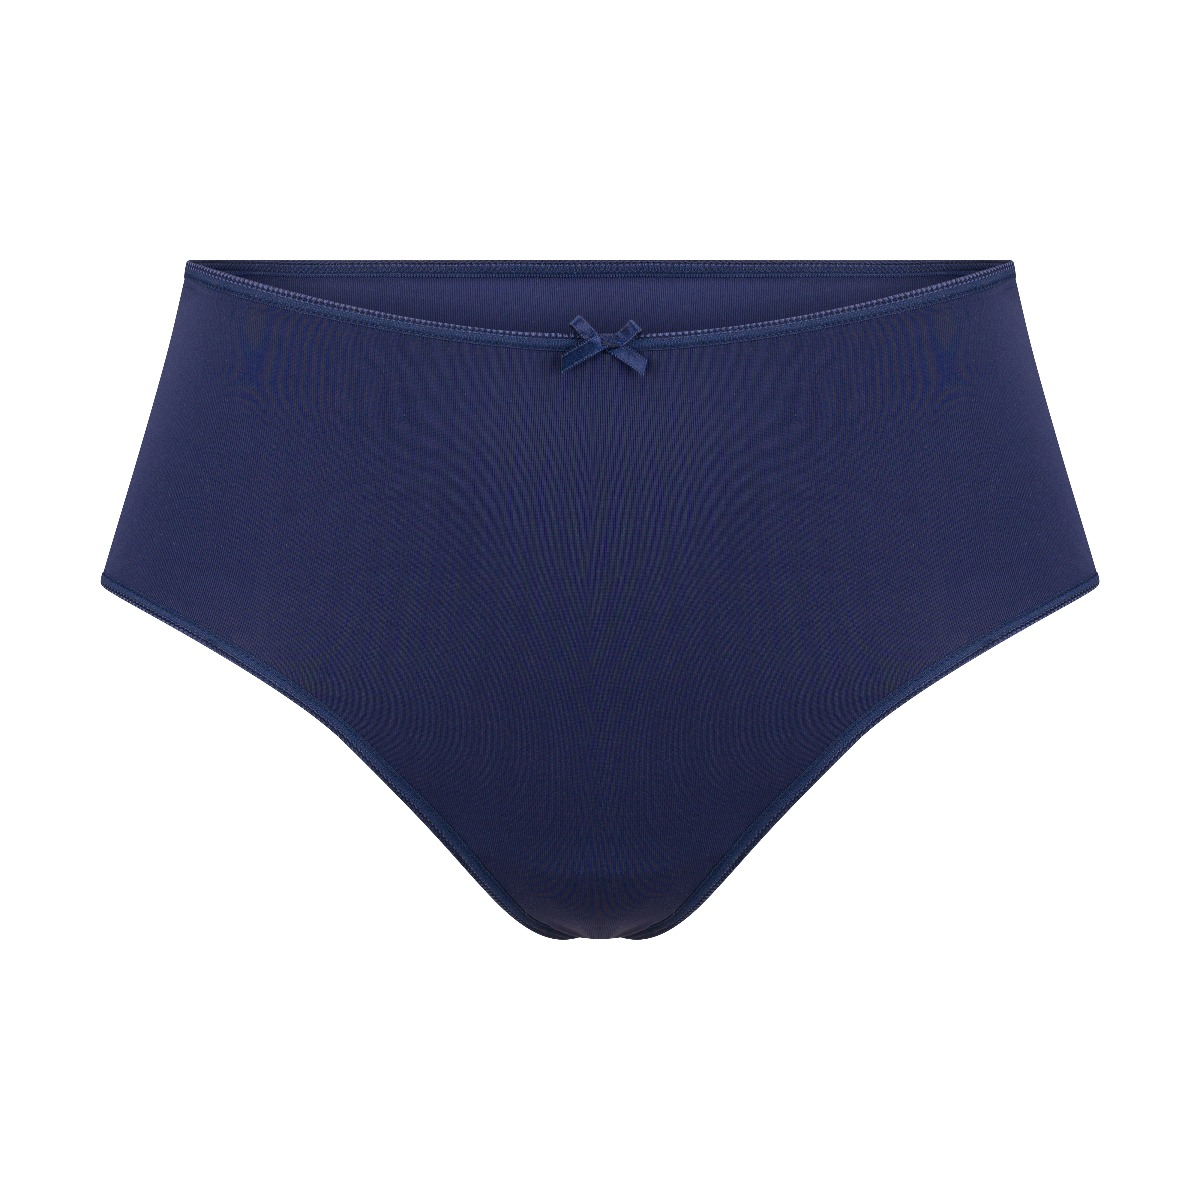 RJ Pure Color Dames String Extra Hoog Donkerblauw L